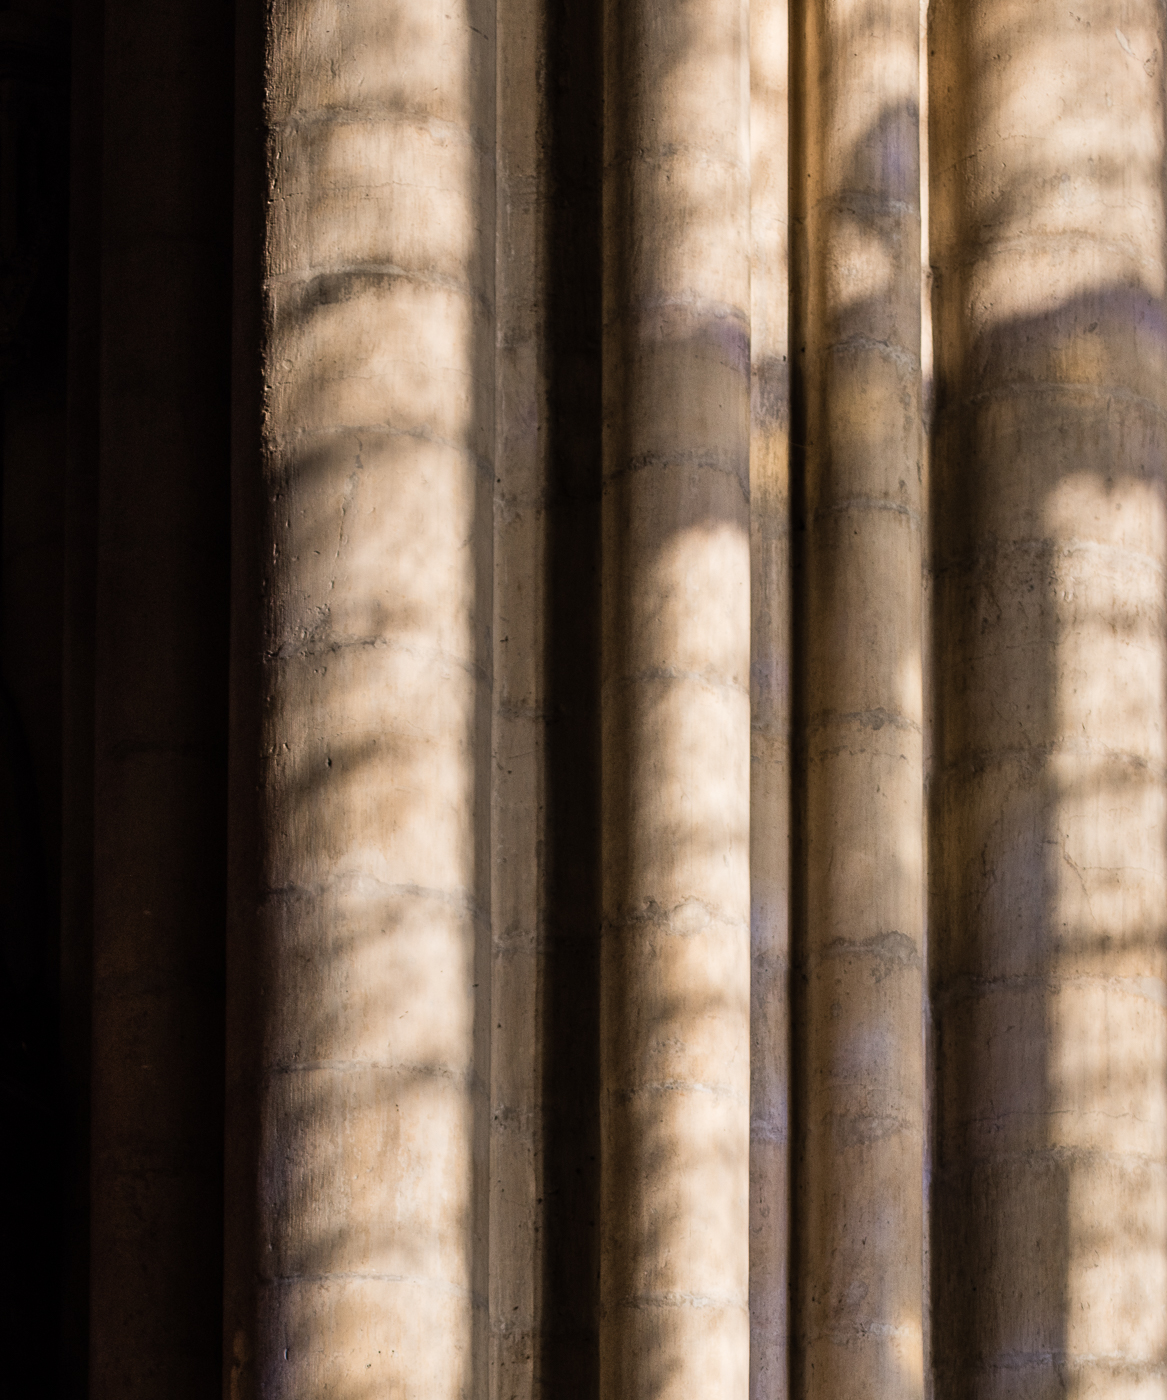 Minster columns with shadows